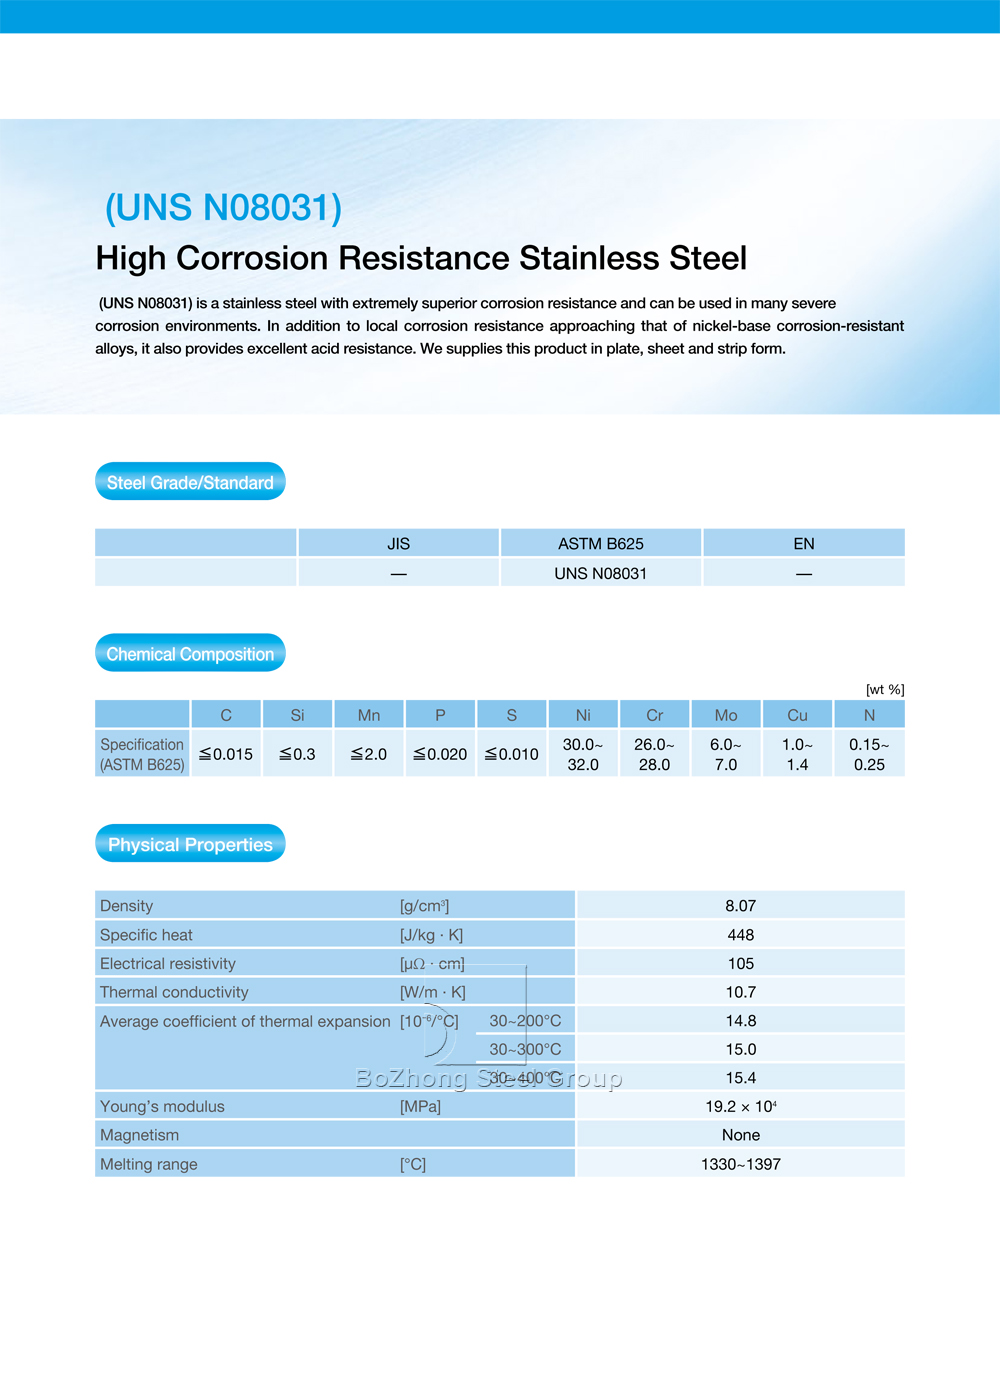 UNS-N08031-stainless-steel-use-in-severe-corrosion-environments-In-China